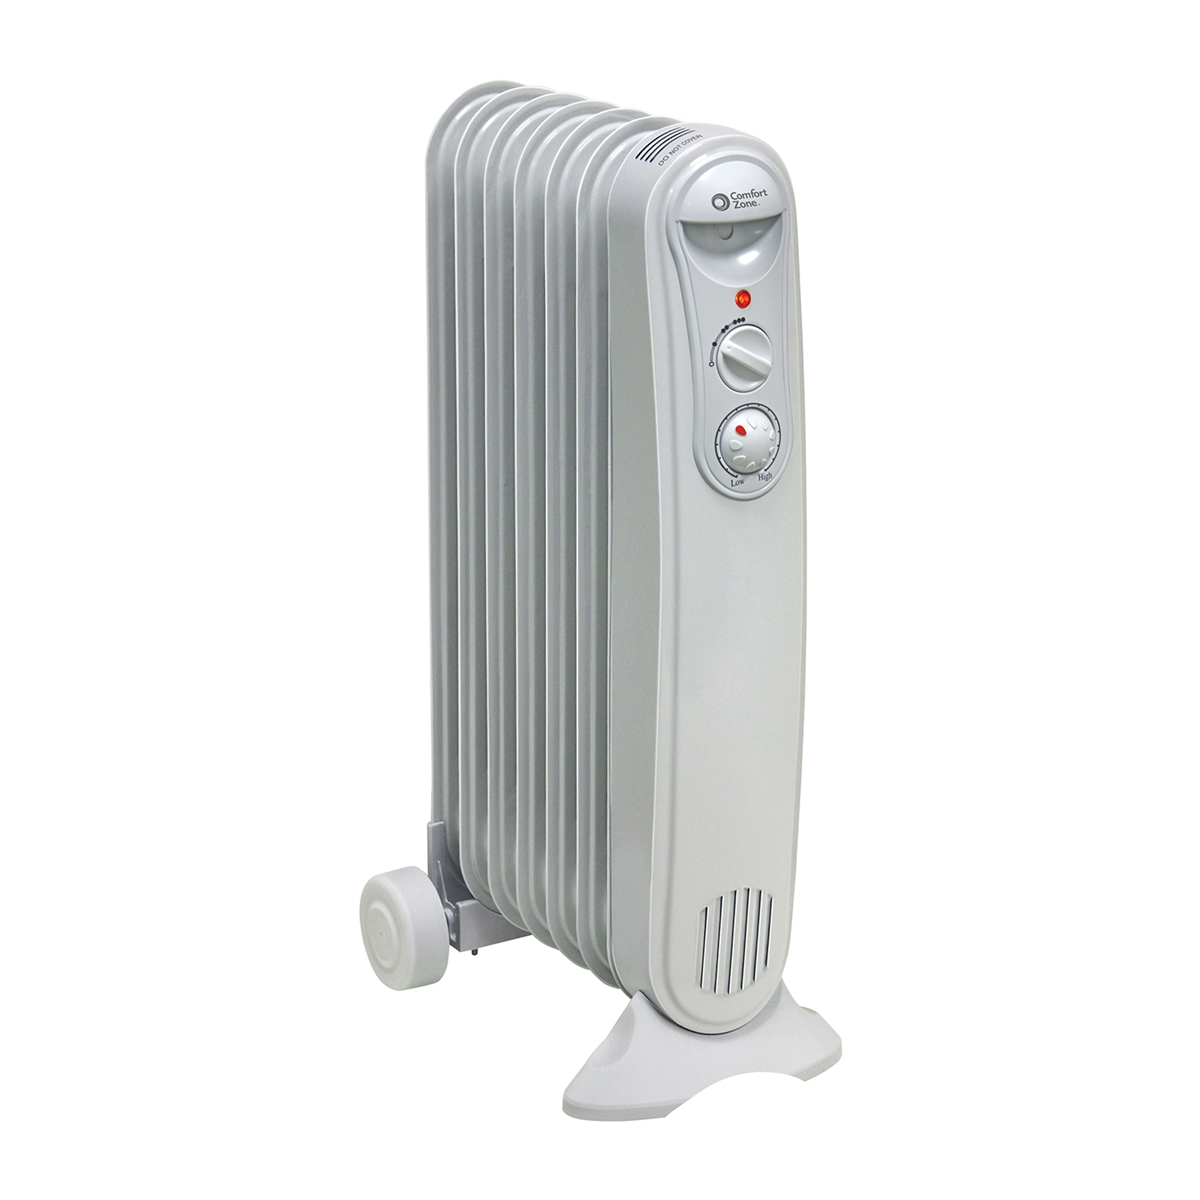 Comfort Zone Cz7007j Oil Filled Electric Radiator Heater